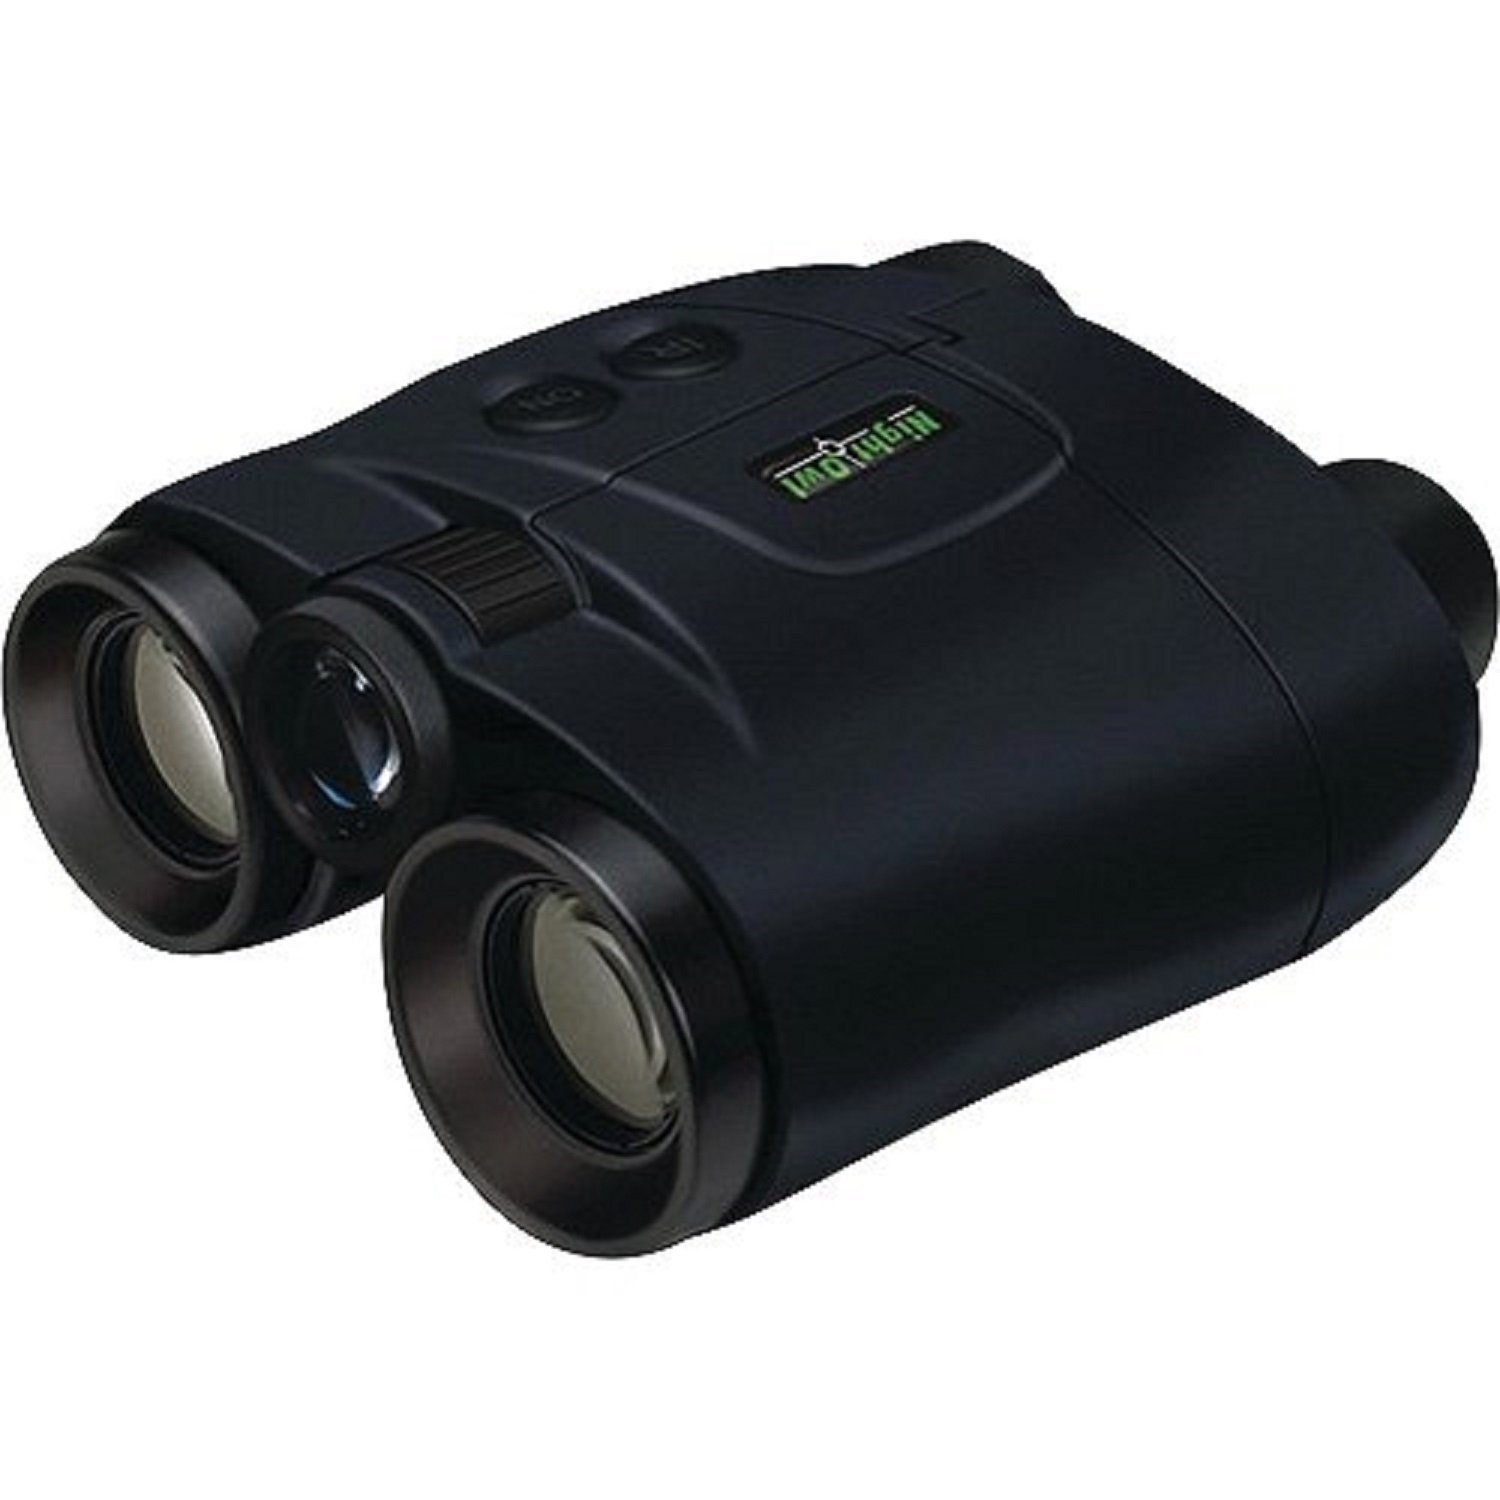 Night Owl Pro Nexgen Night Vision Binocular (3x) by Night Owl Optics